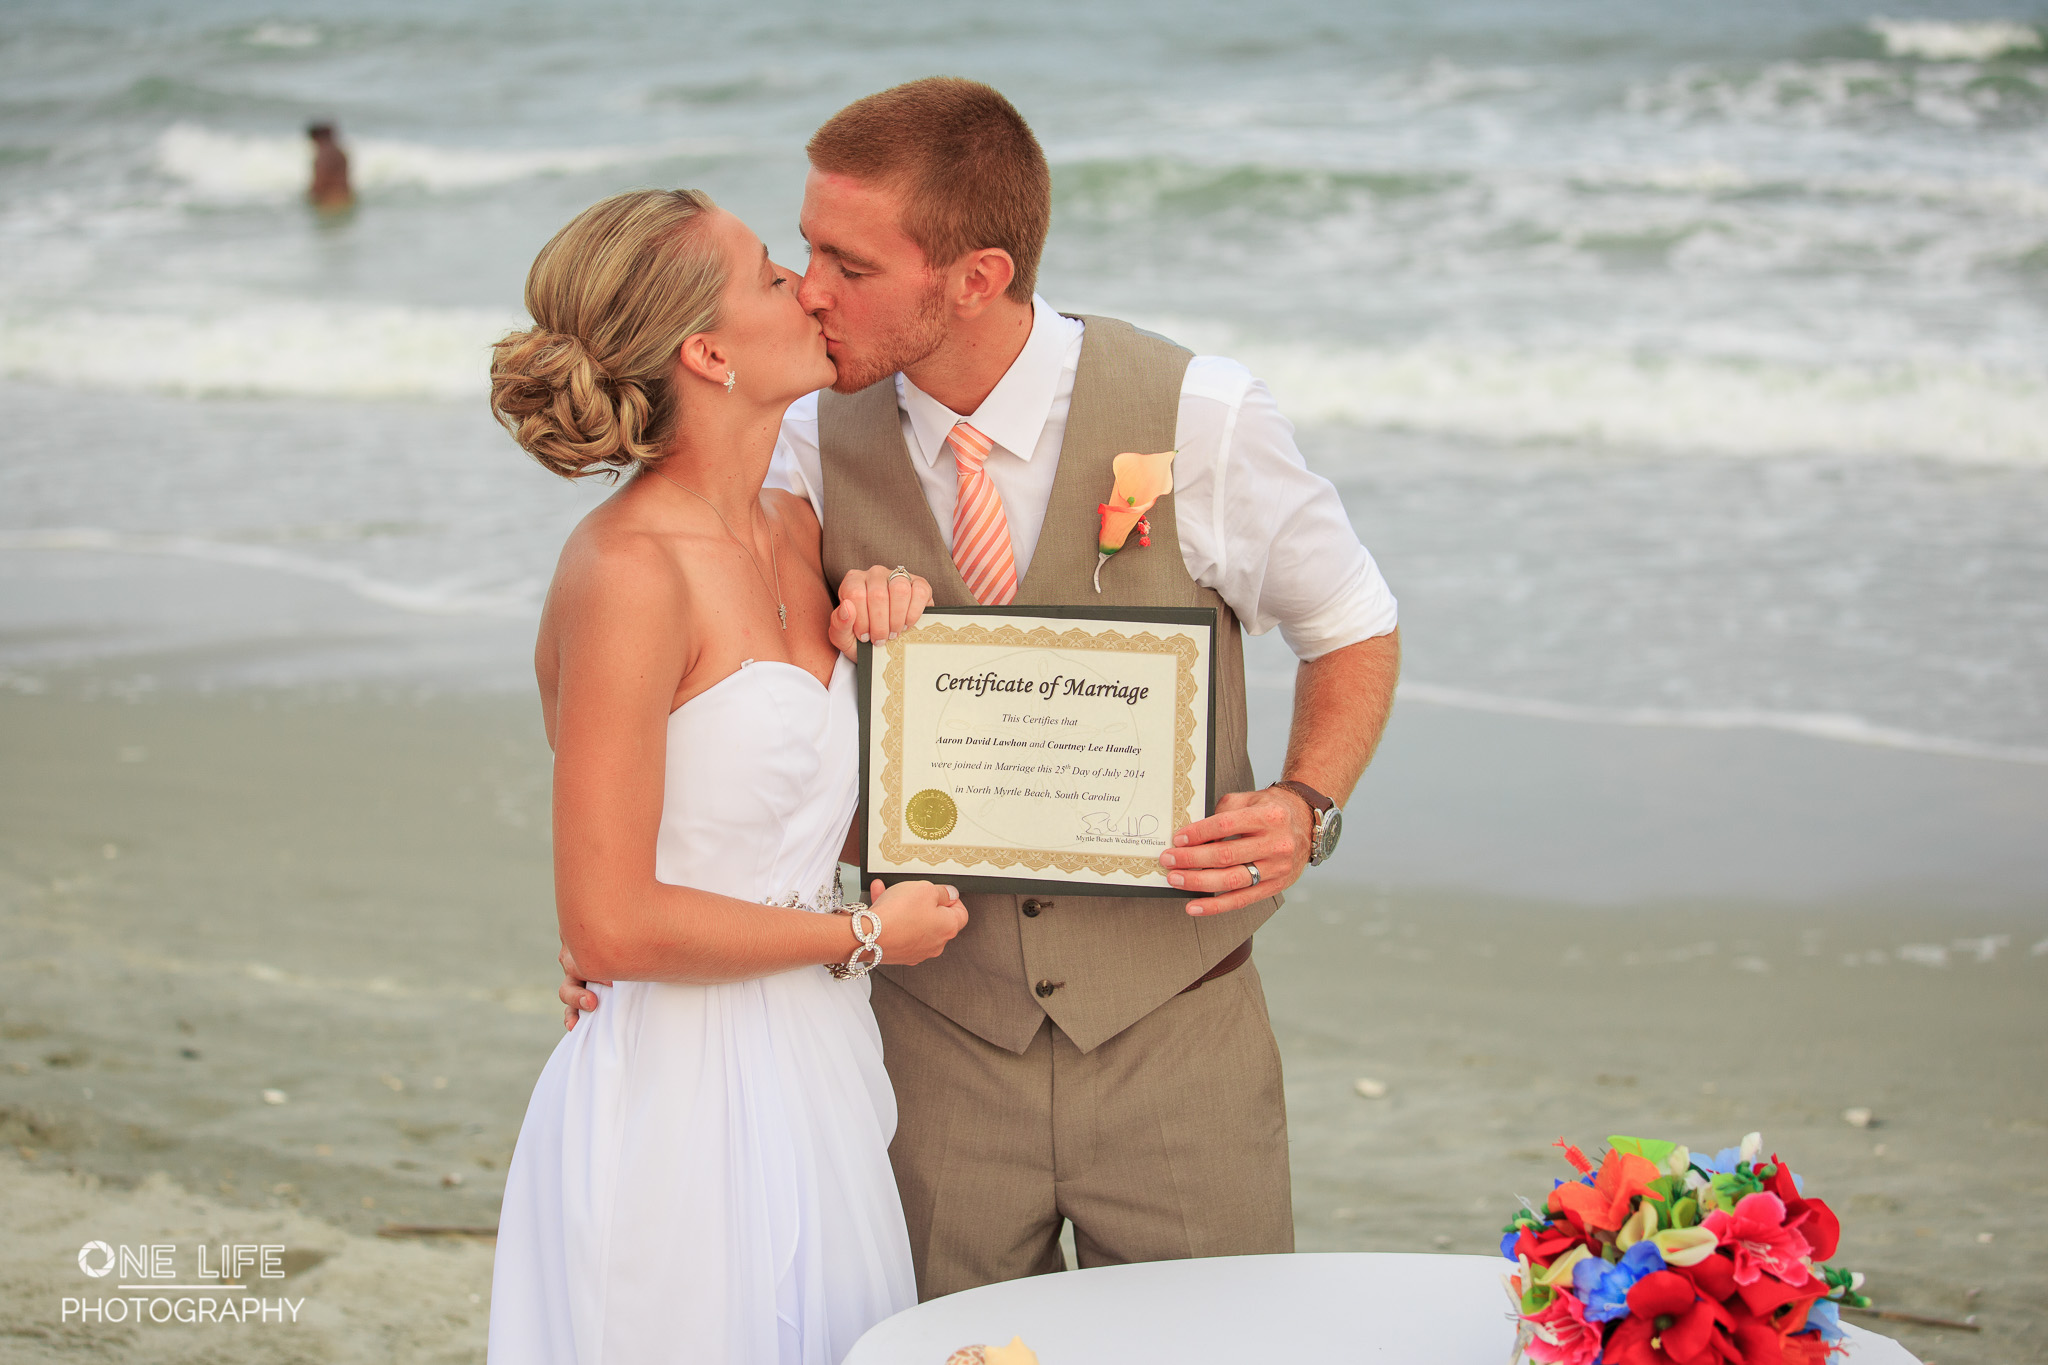 One Life Photography - Wedding Photos